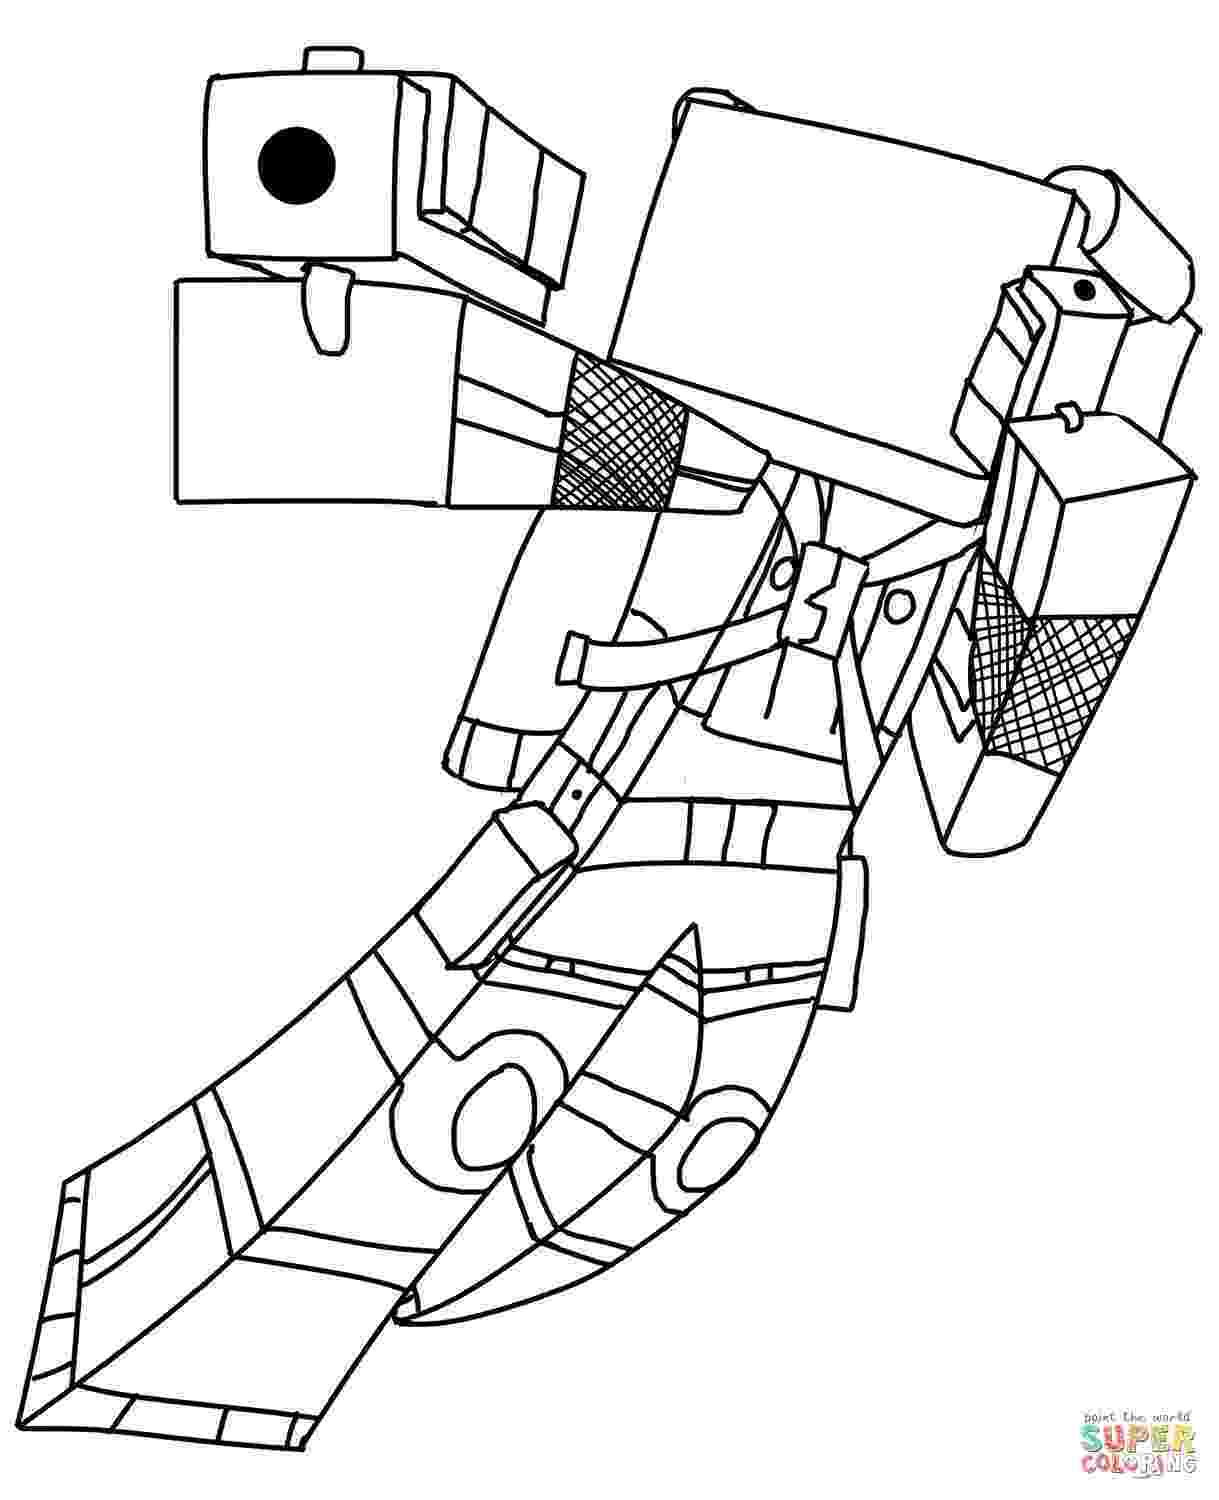 minecraft pictures to print and color minecraft coloring pages dantdm at getcoloringscom free print minecraft pictures color to and